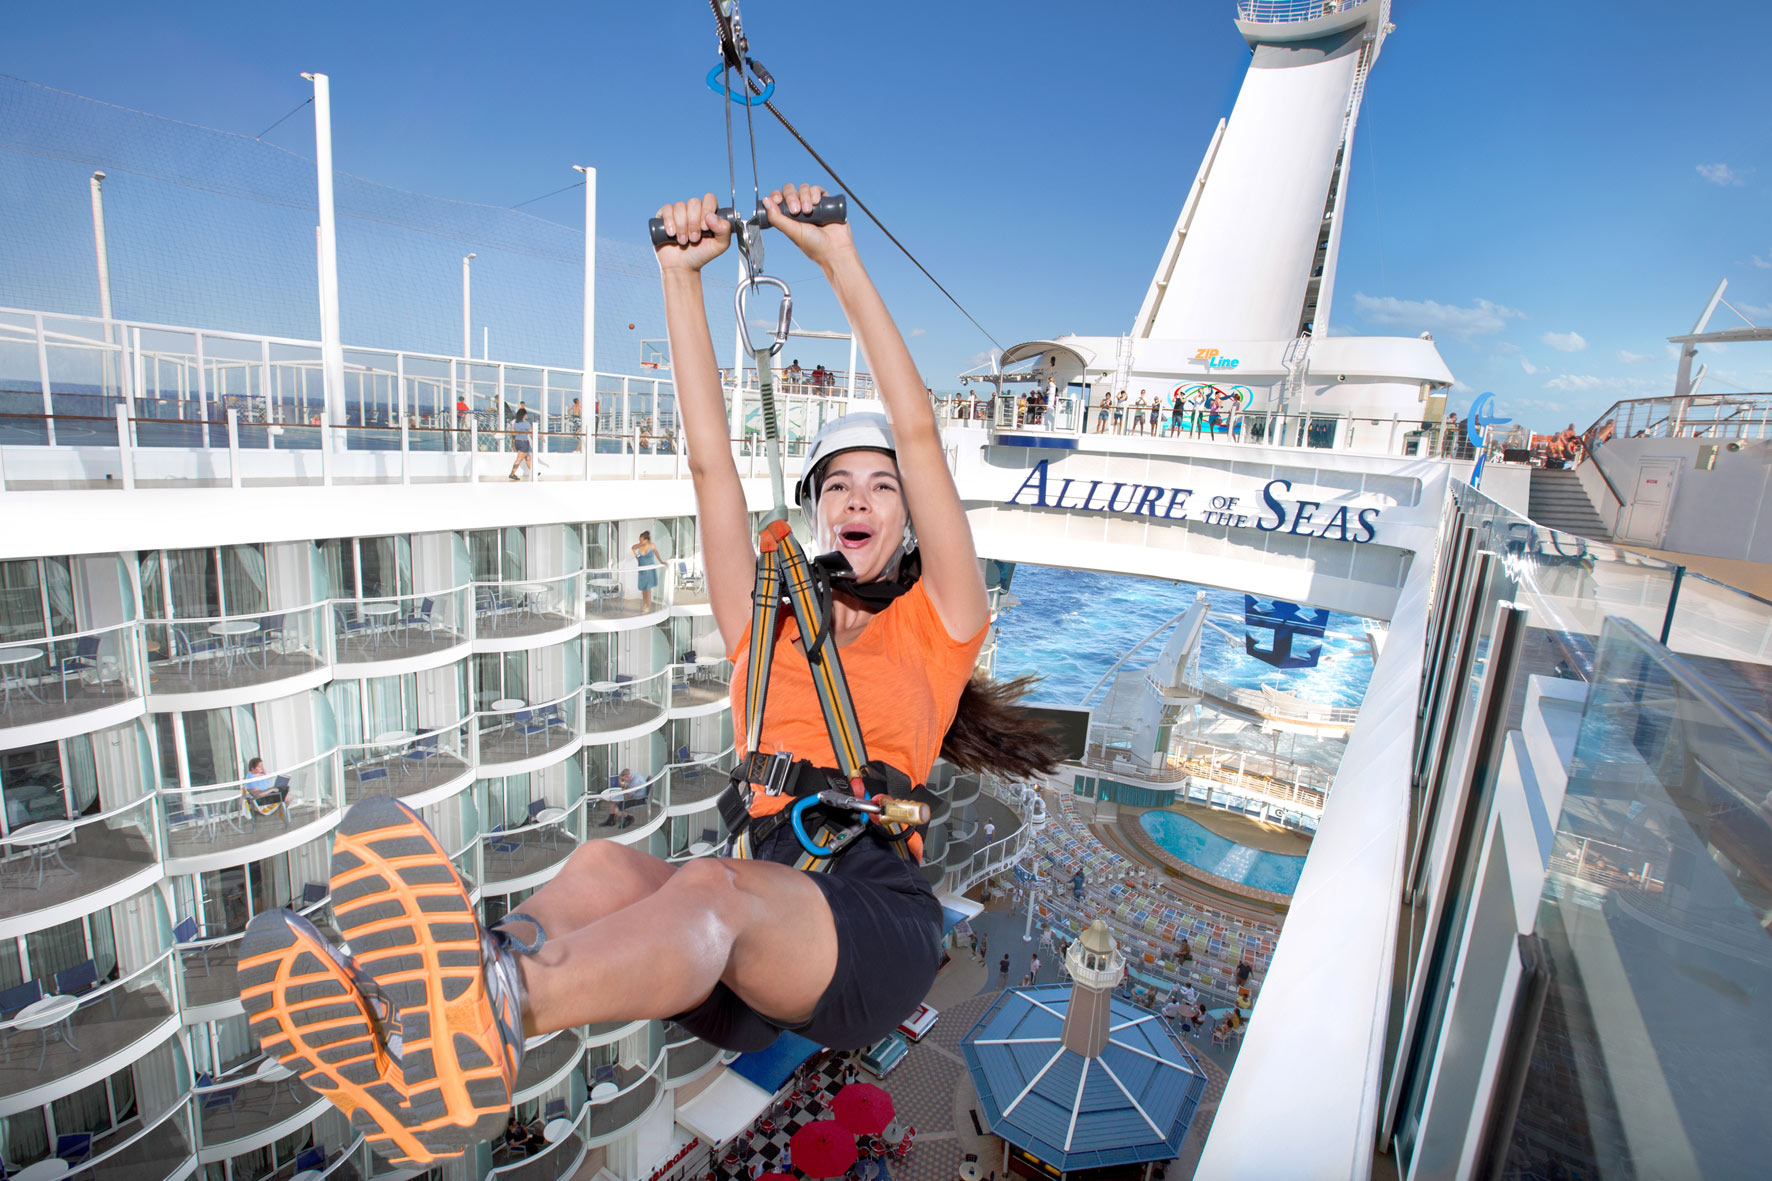 Allure-of-the-Seas_Zipline